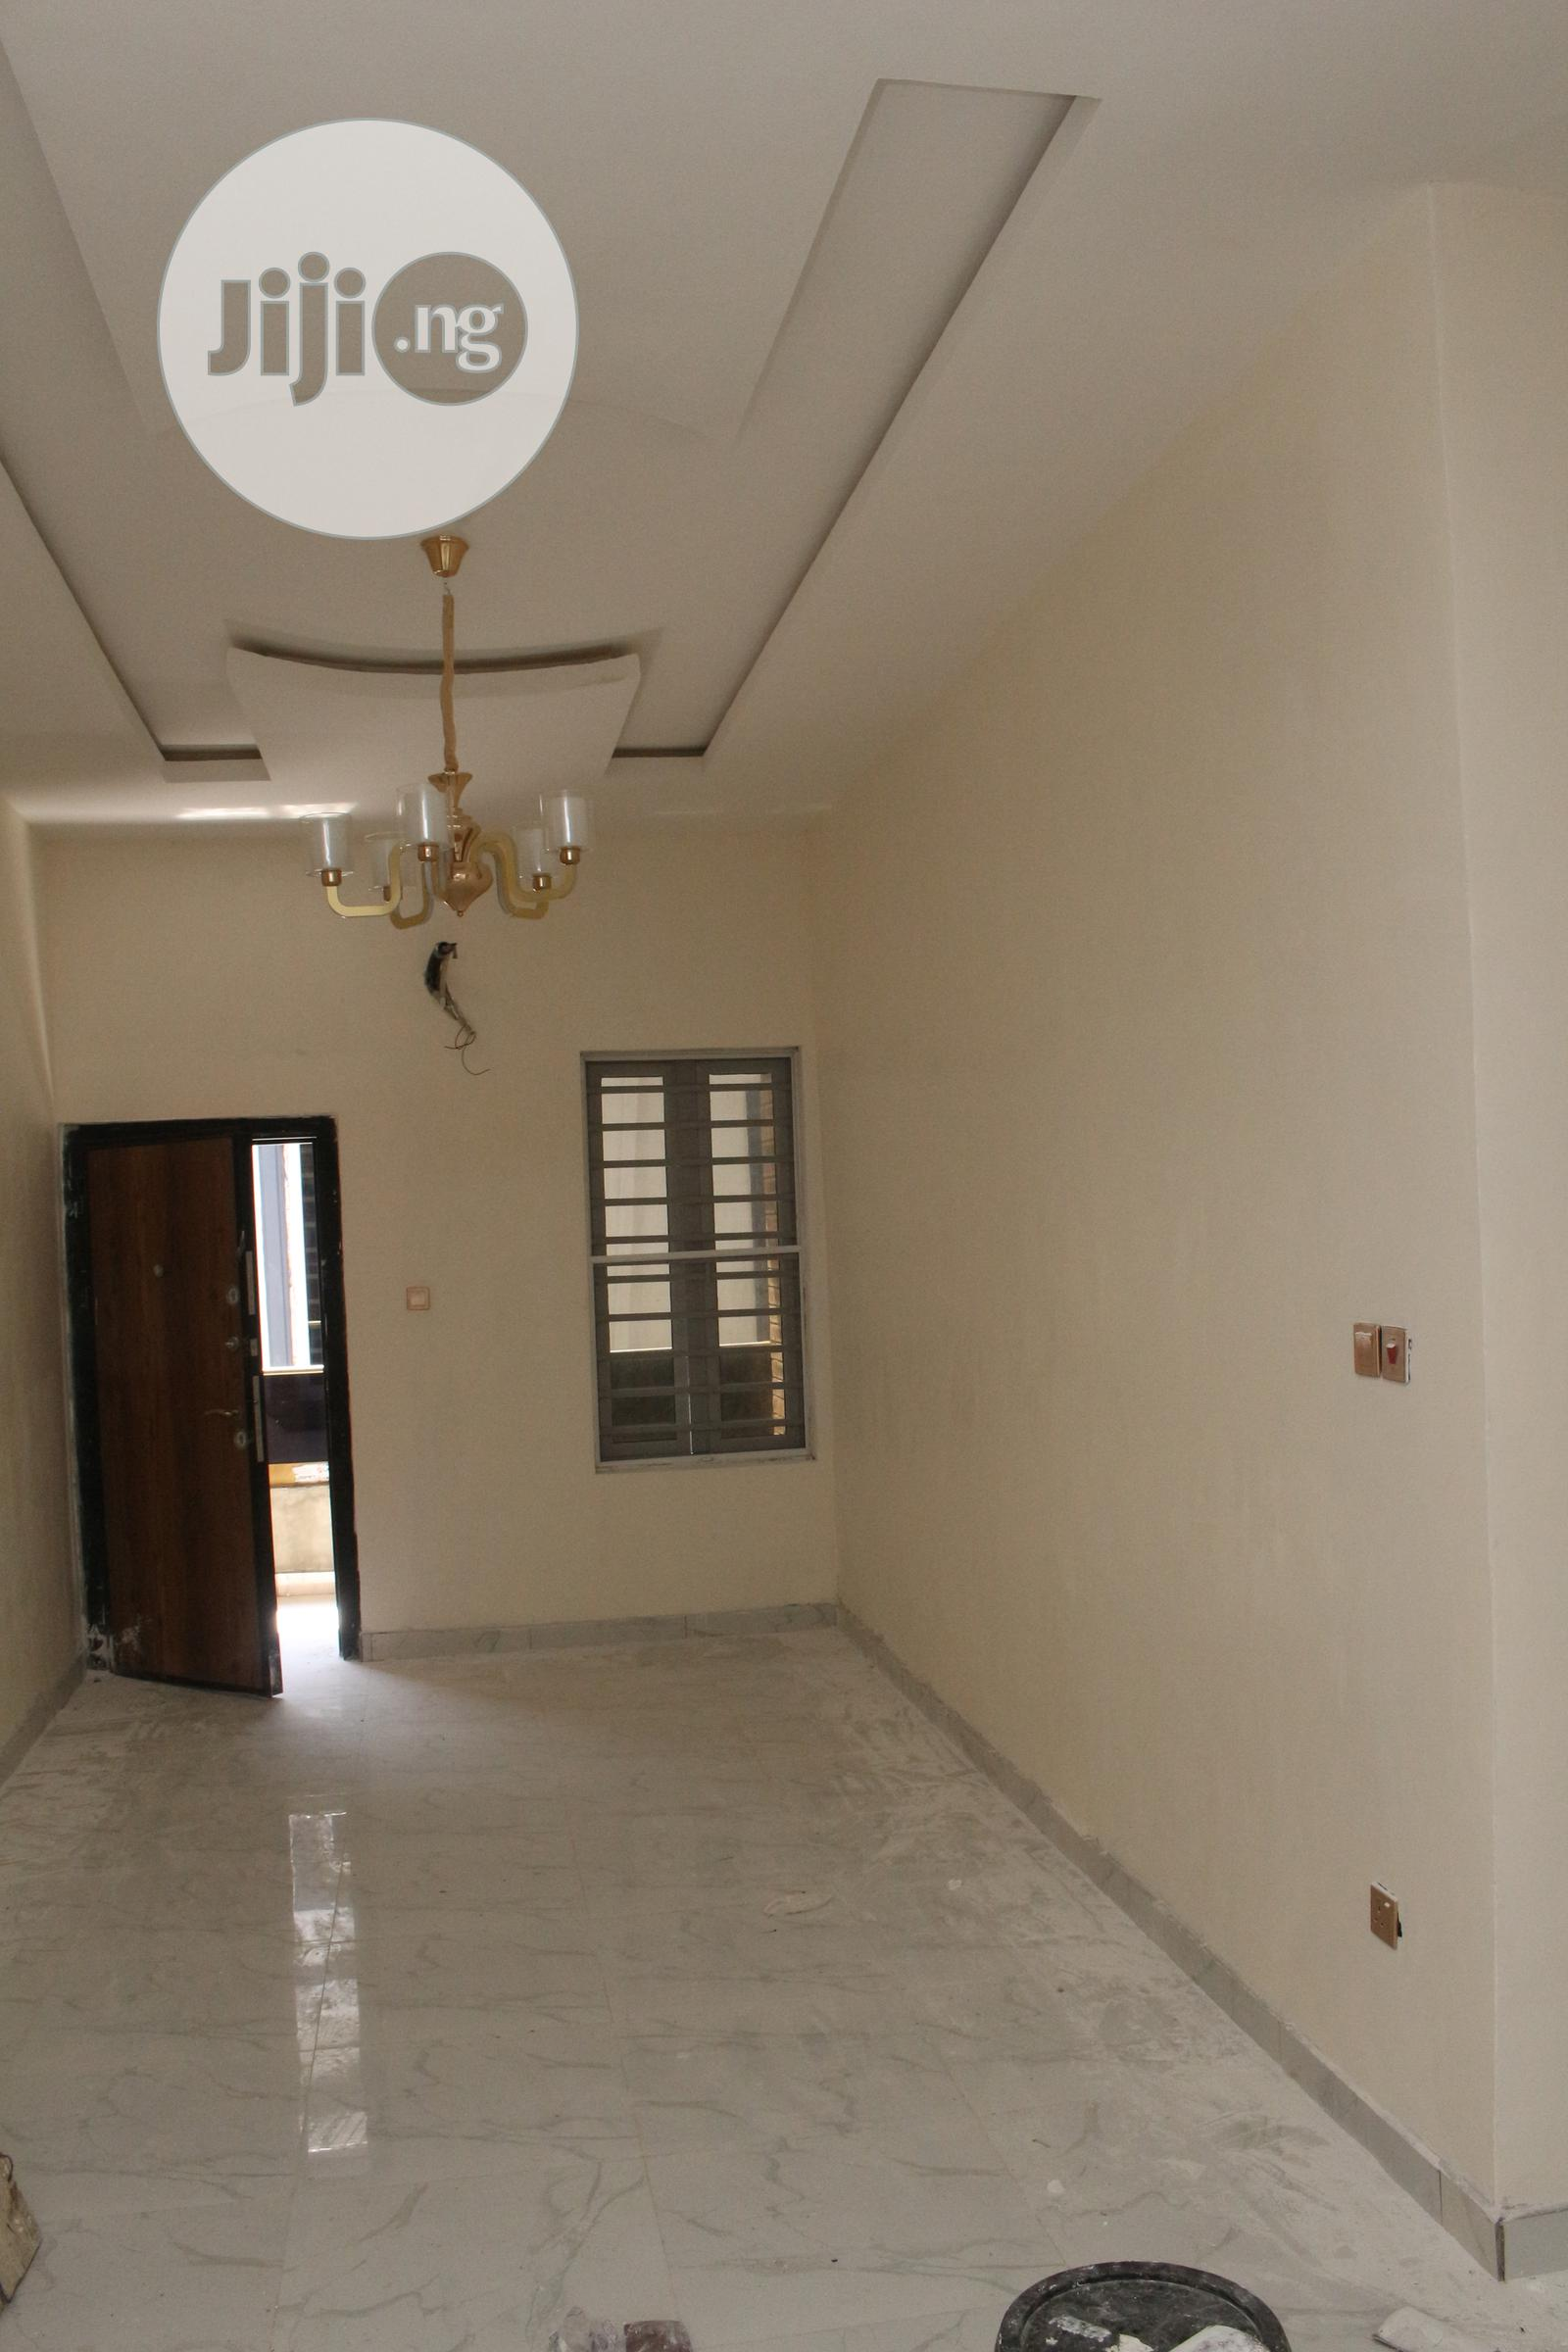 5 Bedroom Semi Detached Duplex In Lekki Offf Lekki Palm City | Houses & Apartments For Sale for sale in Lekki Phase 1, Lagos State, Nigeria